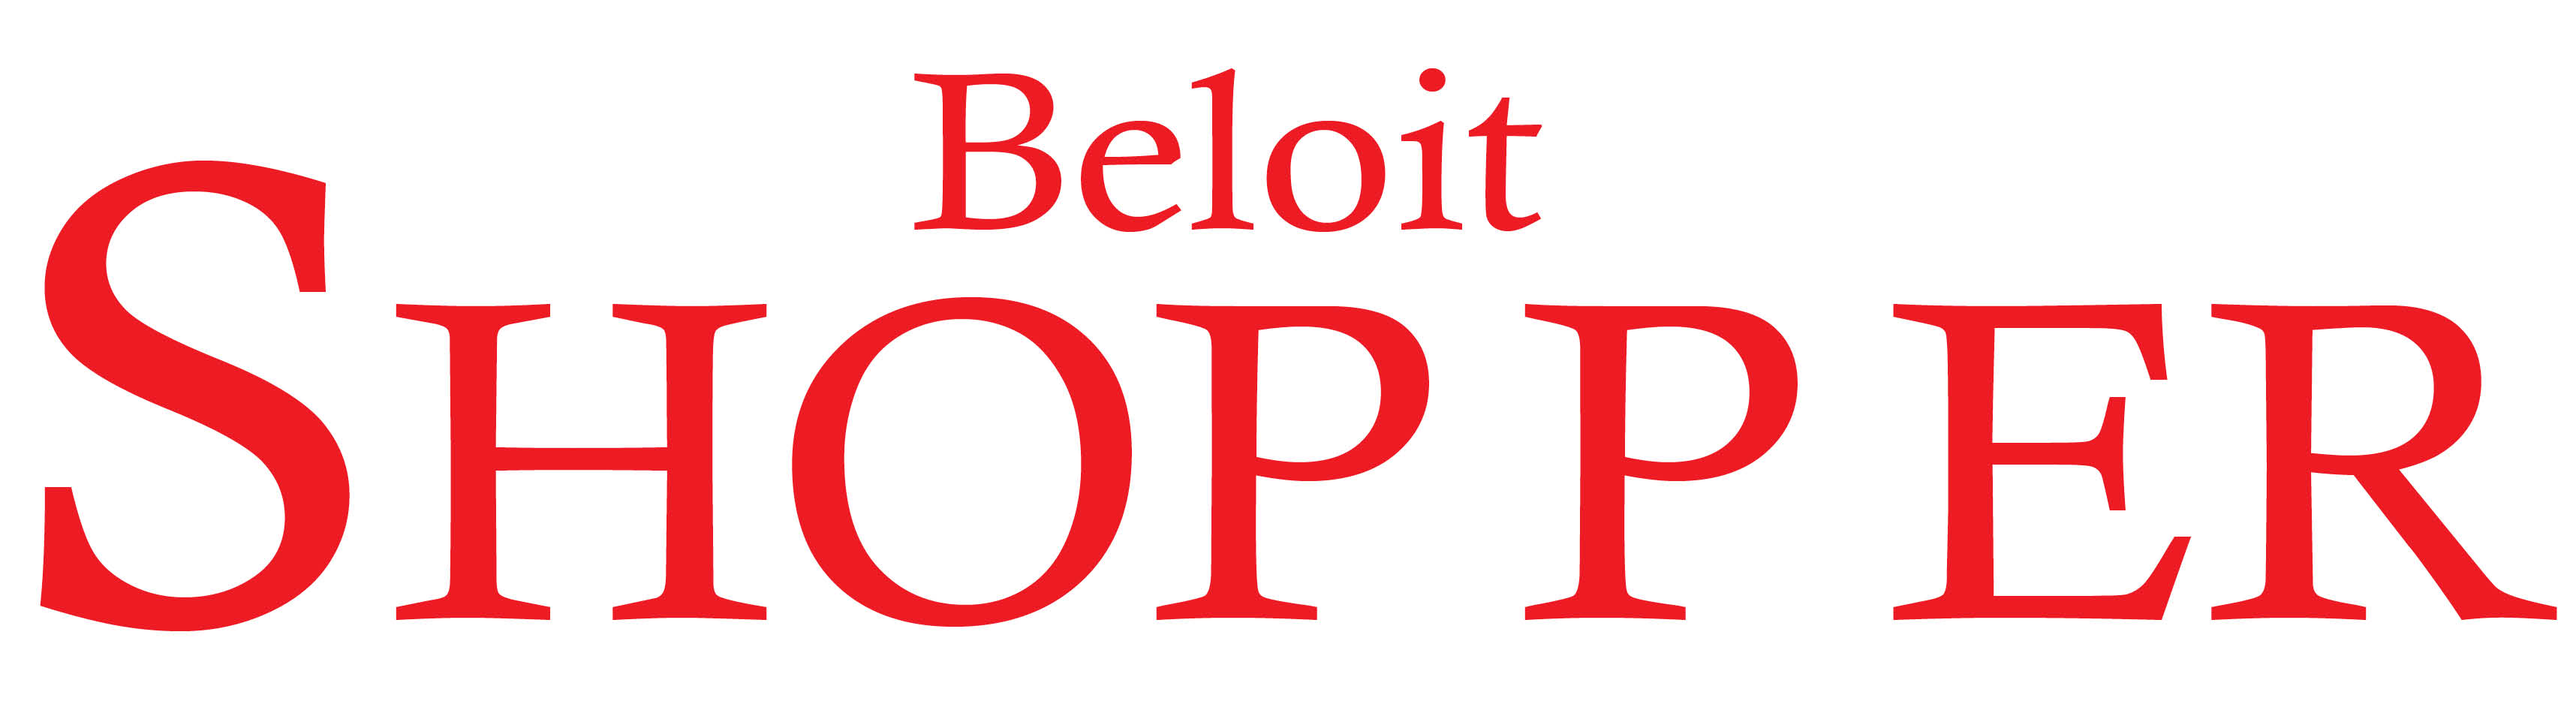 6/15/17 Beloit Shopper